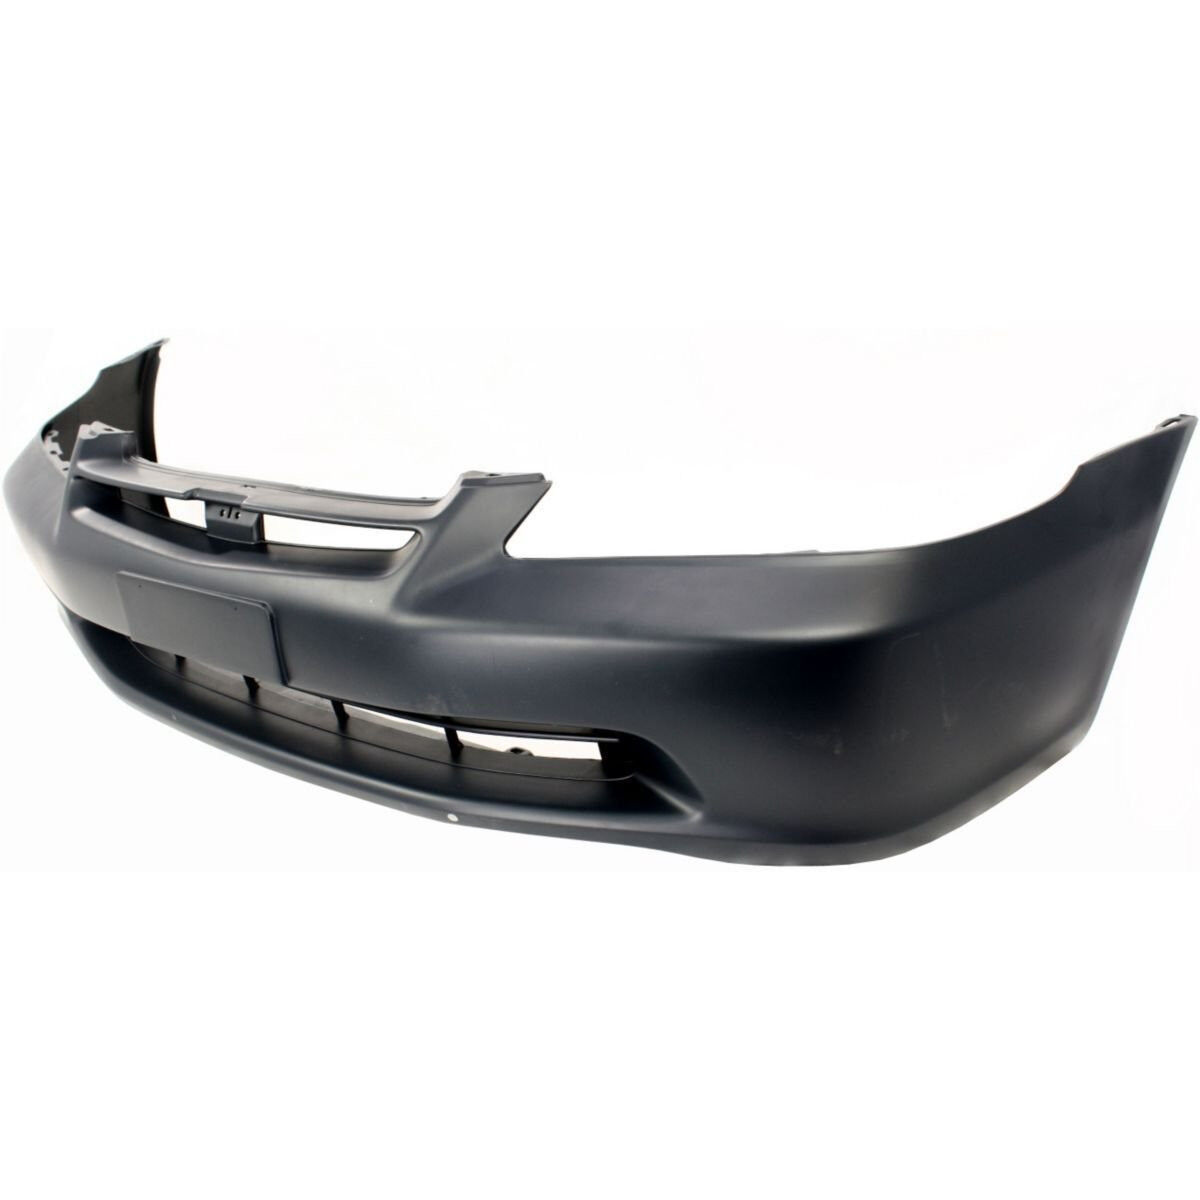 NEW Primered - Front Bumper Cover Fascia For 1998-2000 Honda Accord Sedan 98-00